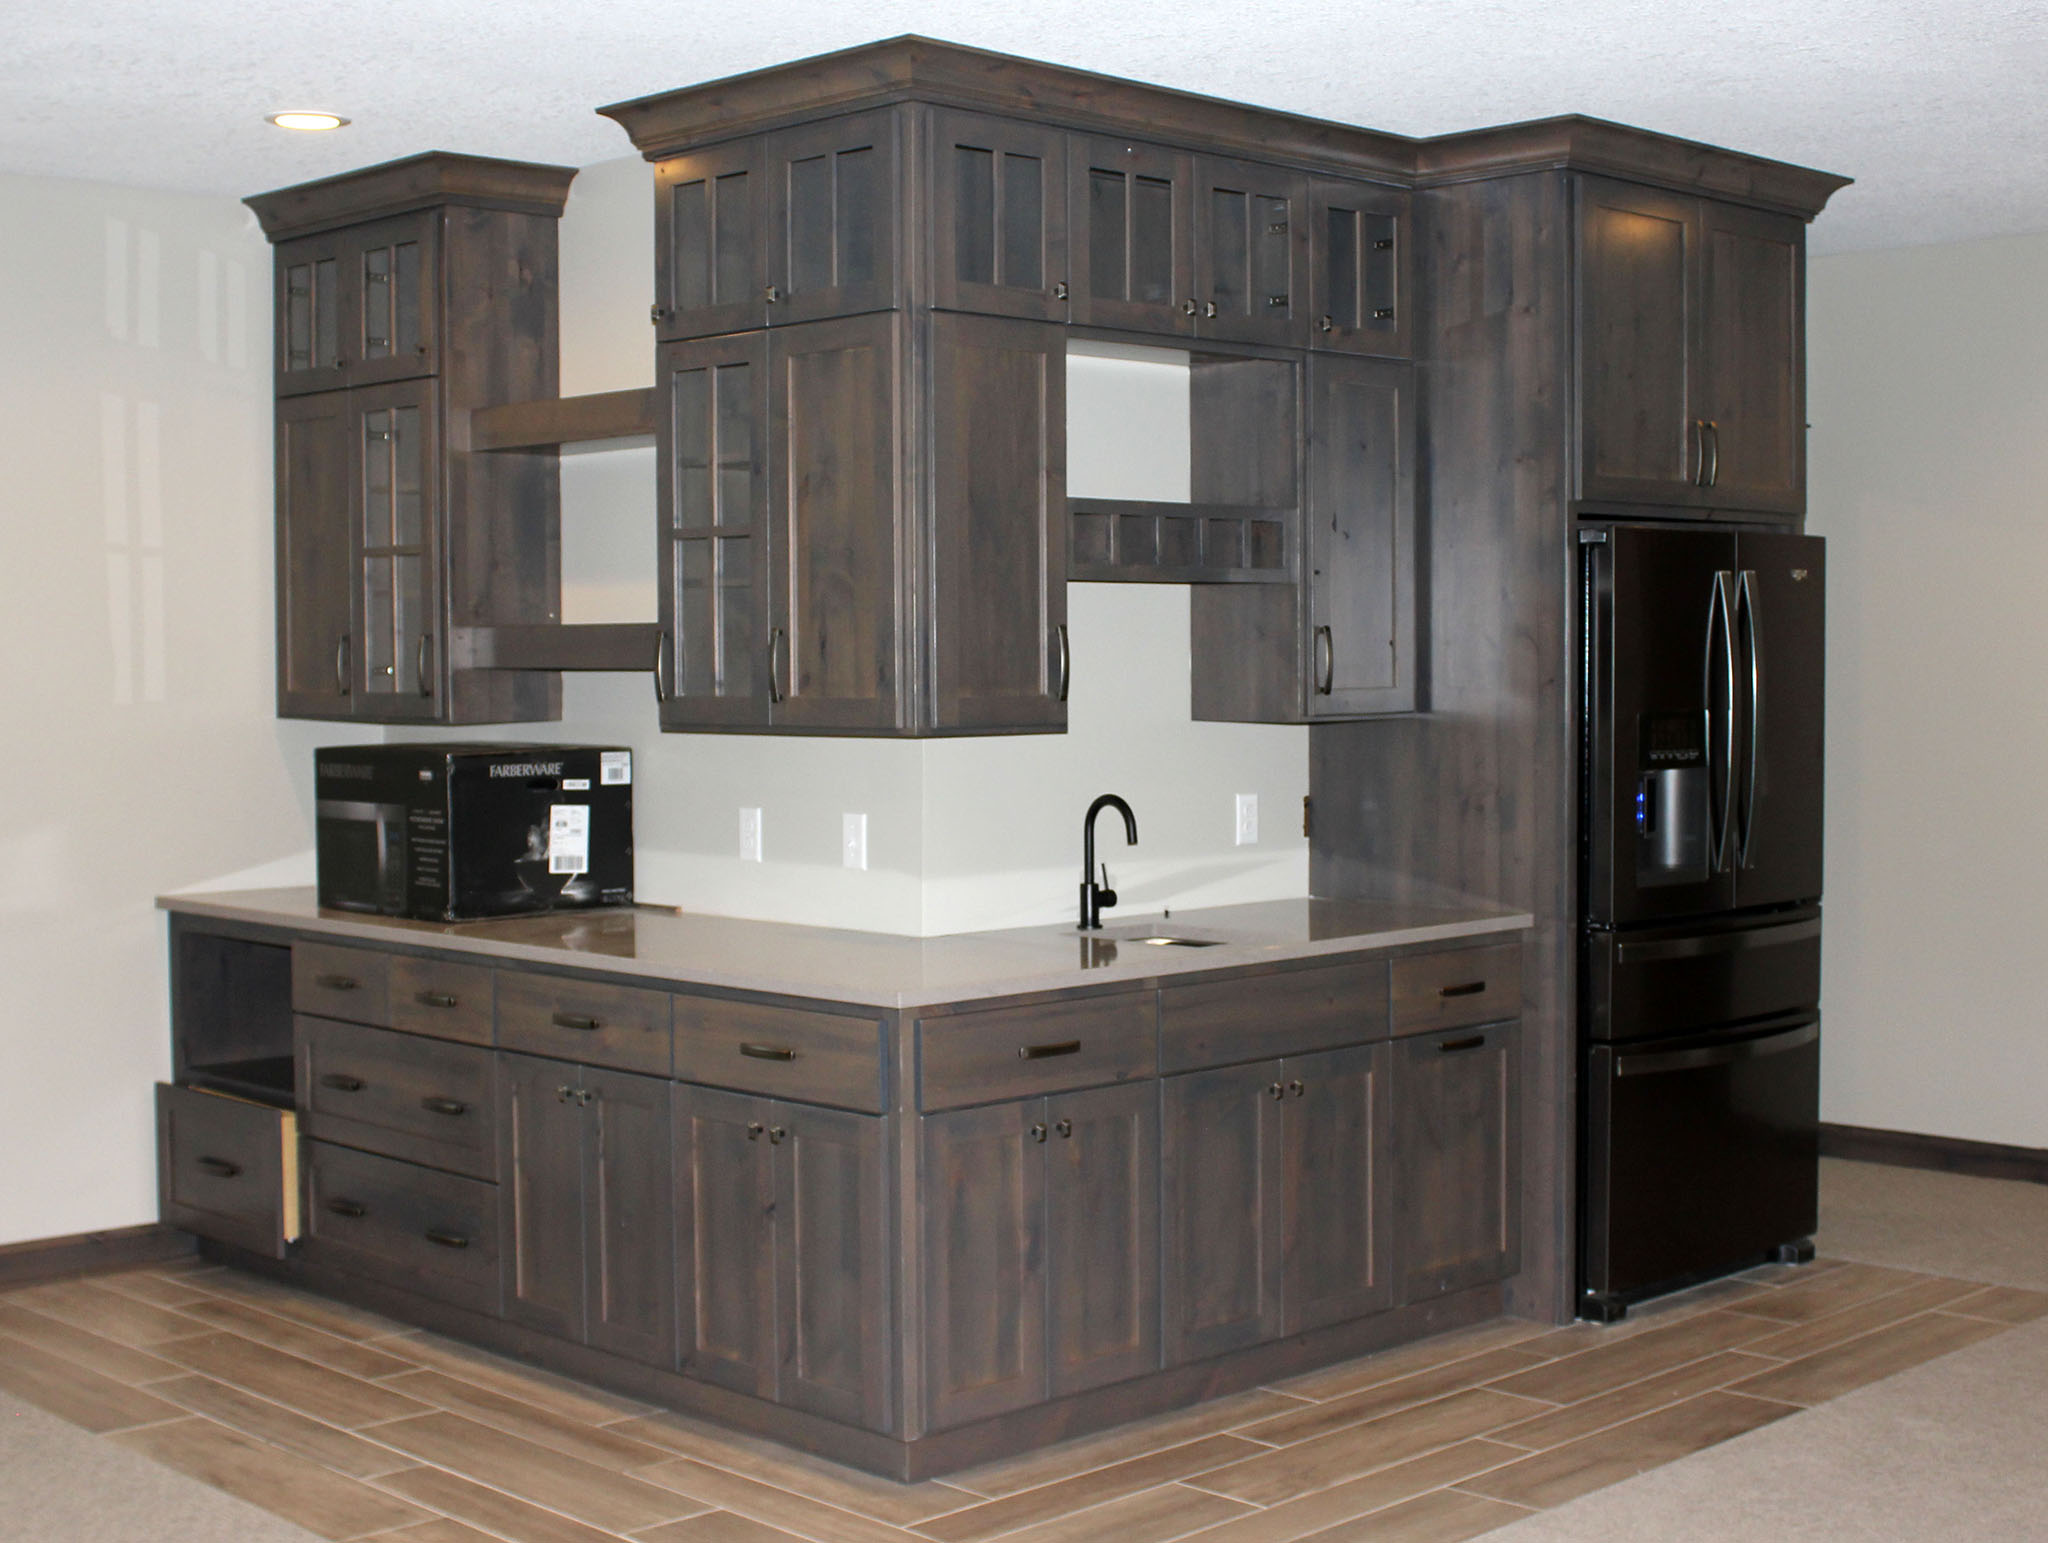 Two-sided basement bar oasis with floor to ceiling custom cabinets, wine rack and glass cabinet doors